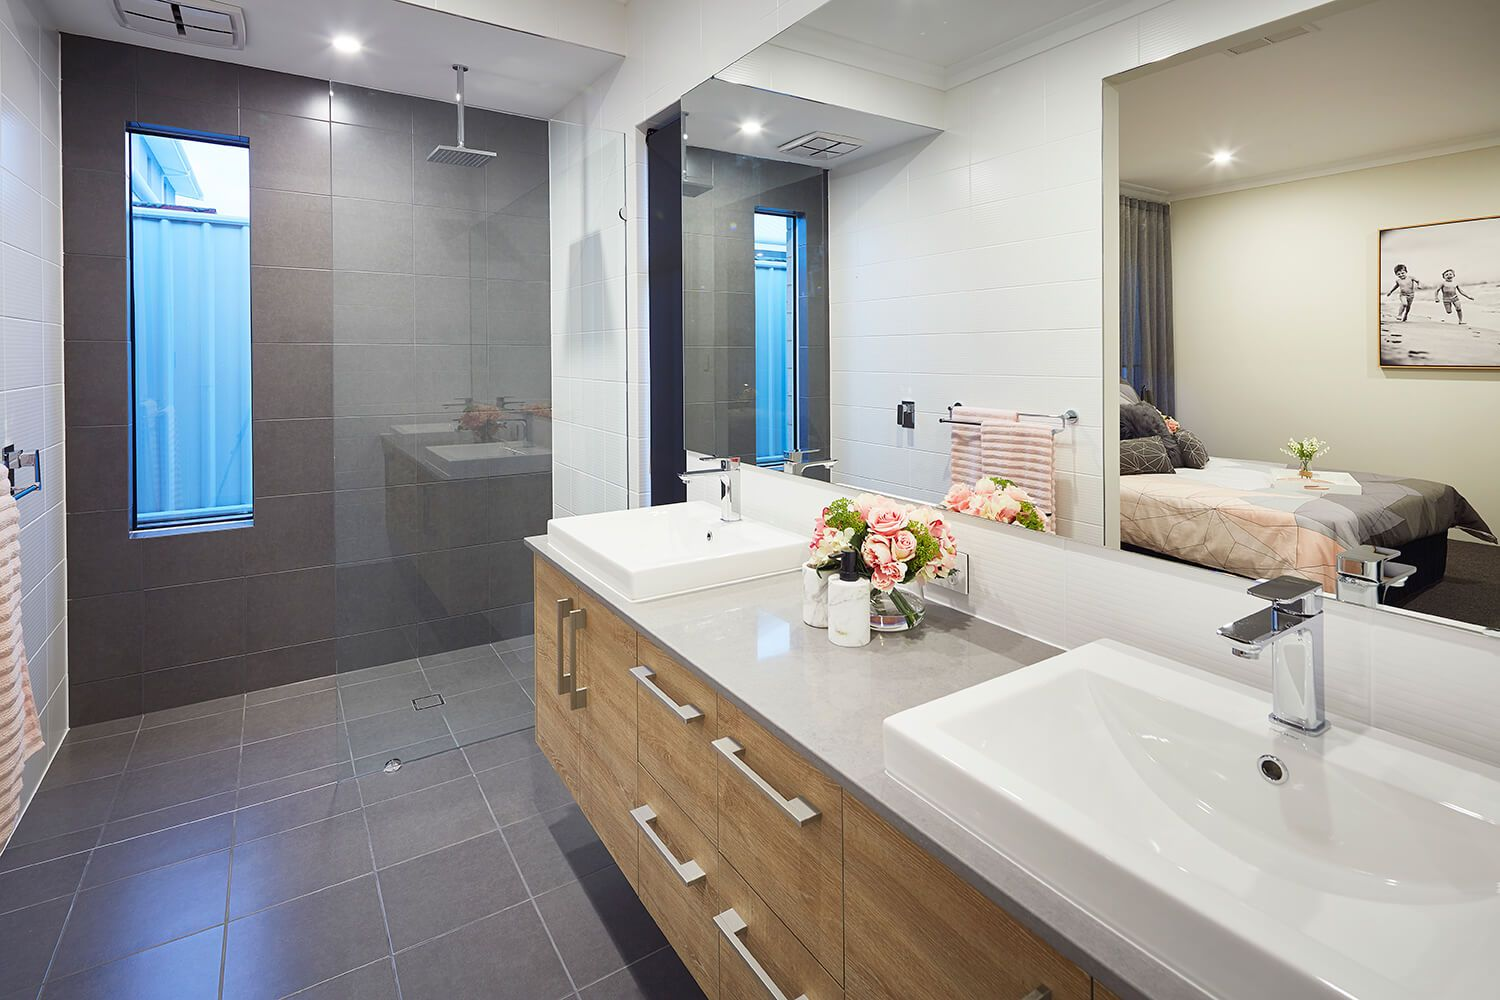 Ensuite blueprint homes affordable building perth the montana ensuite blueprint homes affordable building perth malvernweather Images